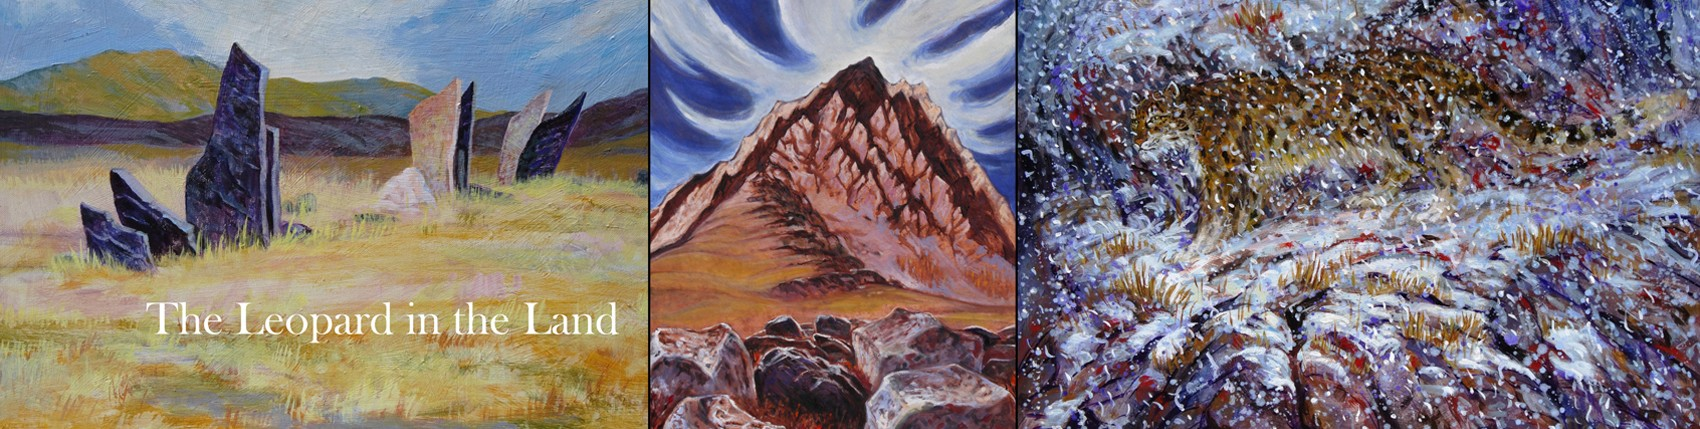 The paintings together with the words The Leopard in the Land. First painting is thin stone slabs standing in a meadow with mountains in the distance. Second painting red mountain with blue sky and white clouds in background. Third painting snow leopard hidden behind thousands of snow flakes